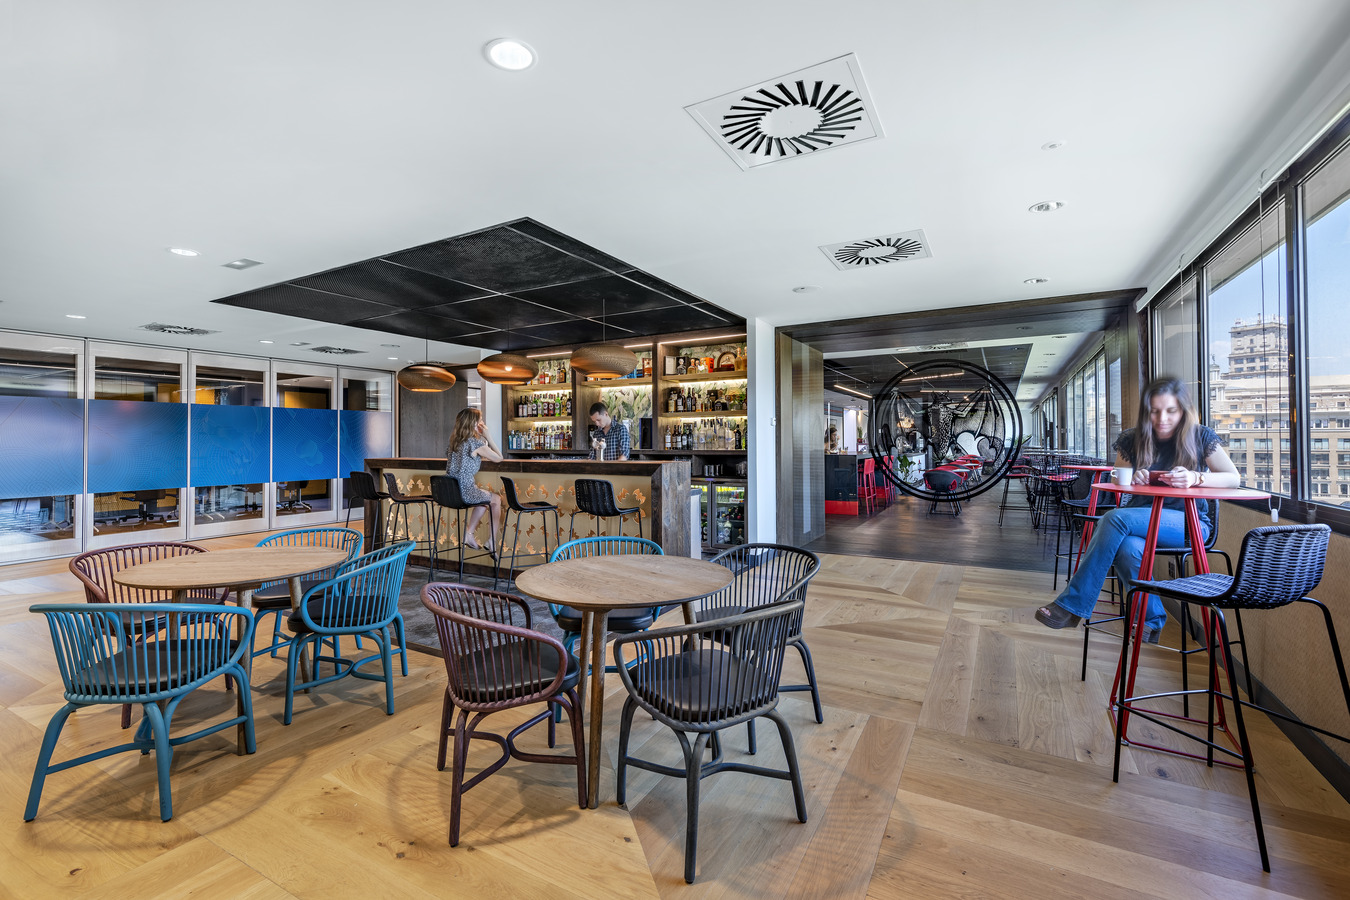 Cafe space at Bacardi's Barcelona offices.